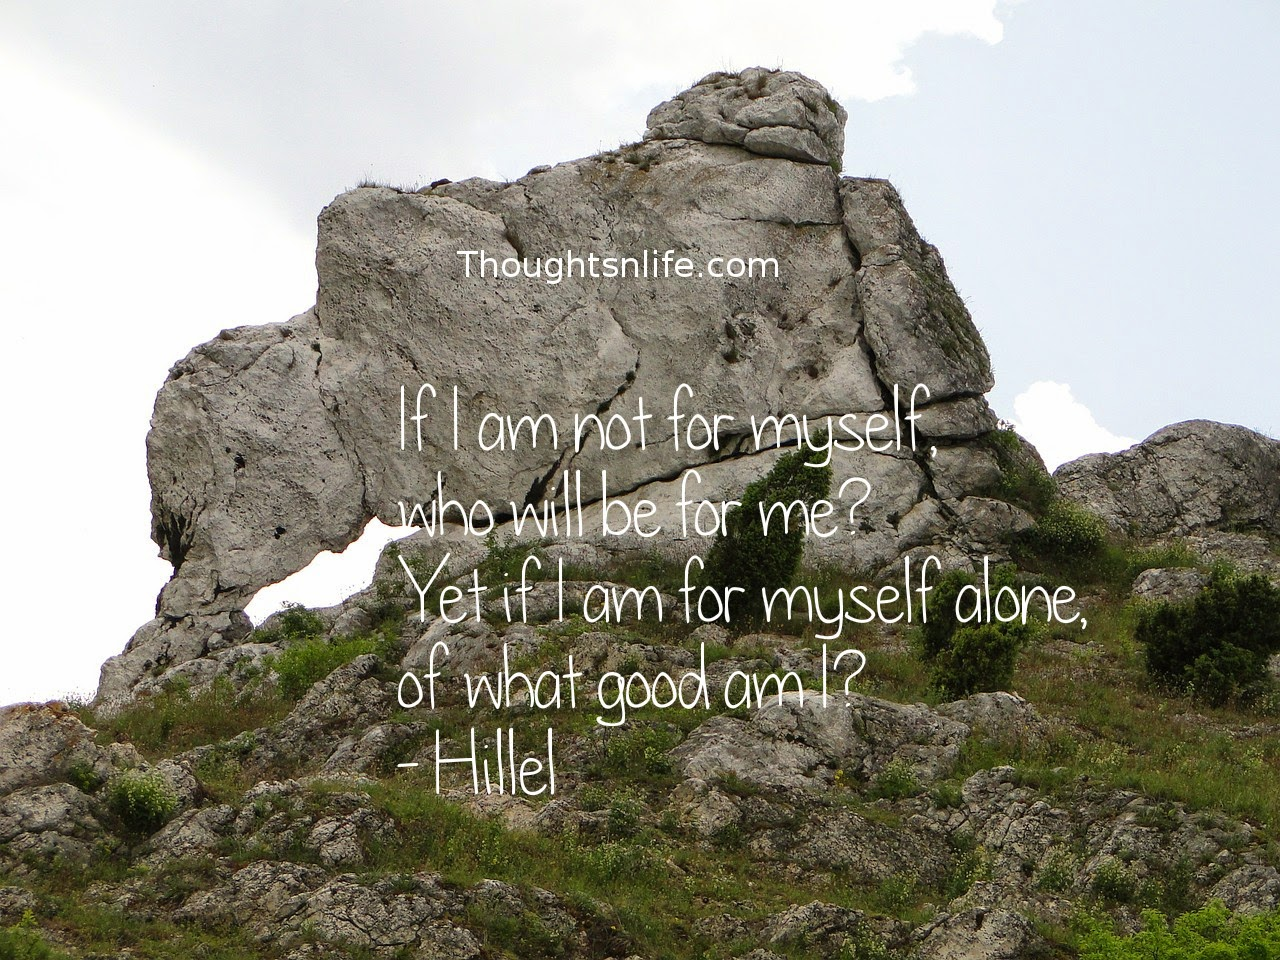 Thoughtsnlife.com: If I am not for myself, who will be for me? Yet if I am for myself alone, of what good am I? - Hillel